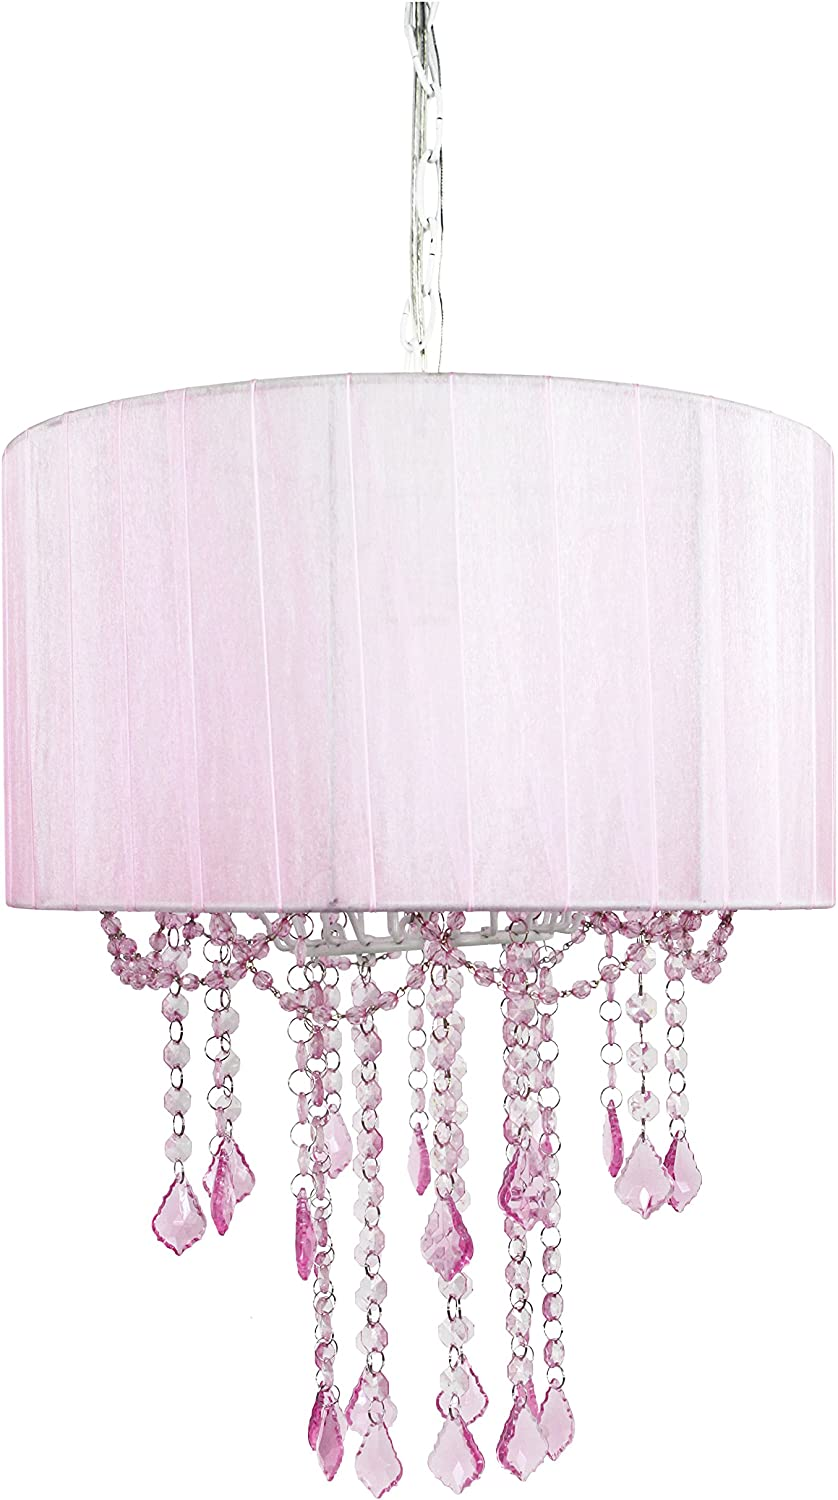 Top 10 Best Chandelier For Baby Girl Nursery (2020 Reviews & Buying Guide) 4